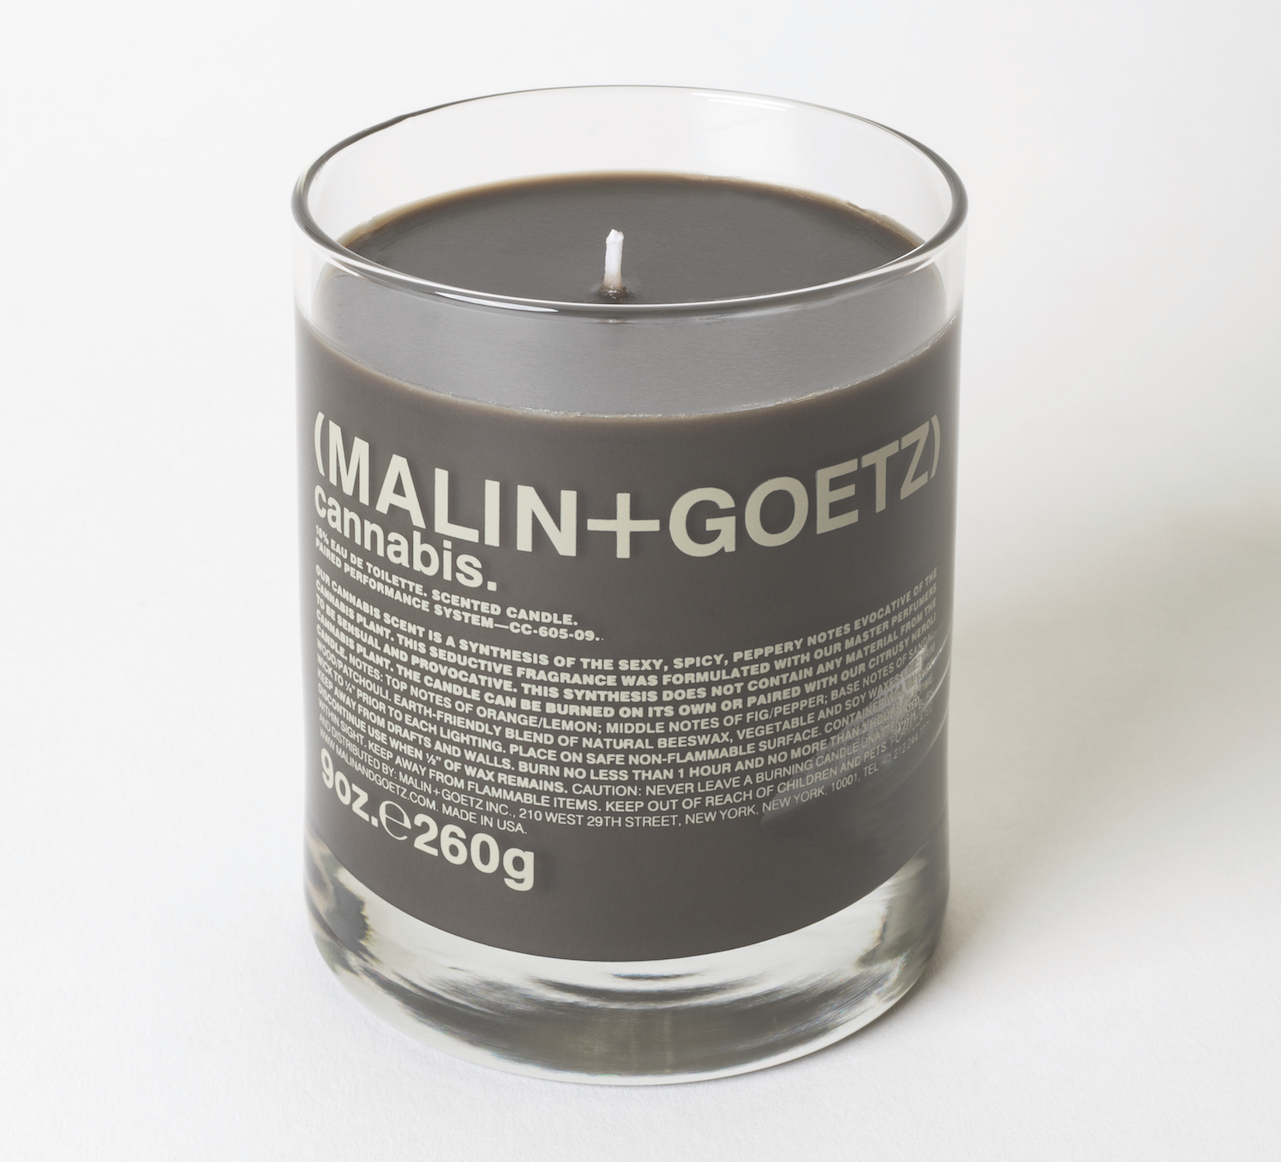 #ScoutedbyDOPE March: Malin+Goetz 9oz. Cannabis Candle